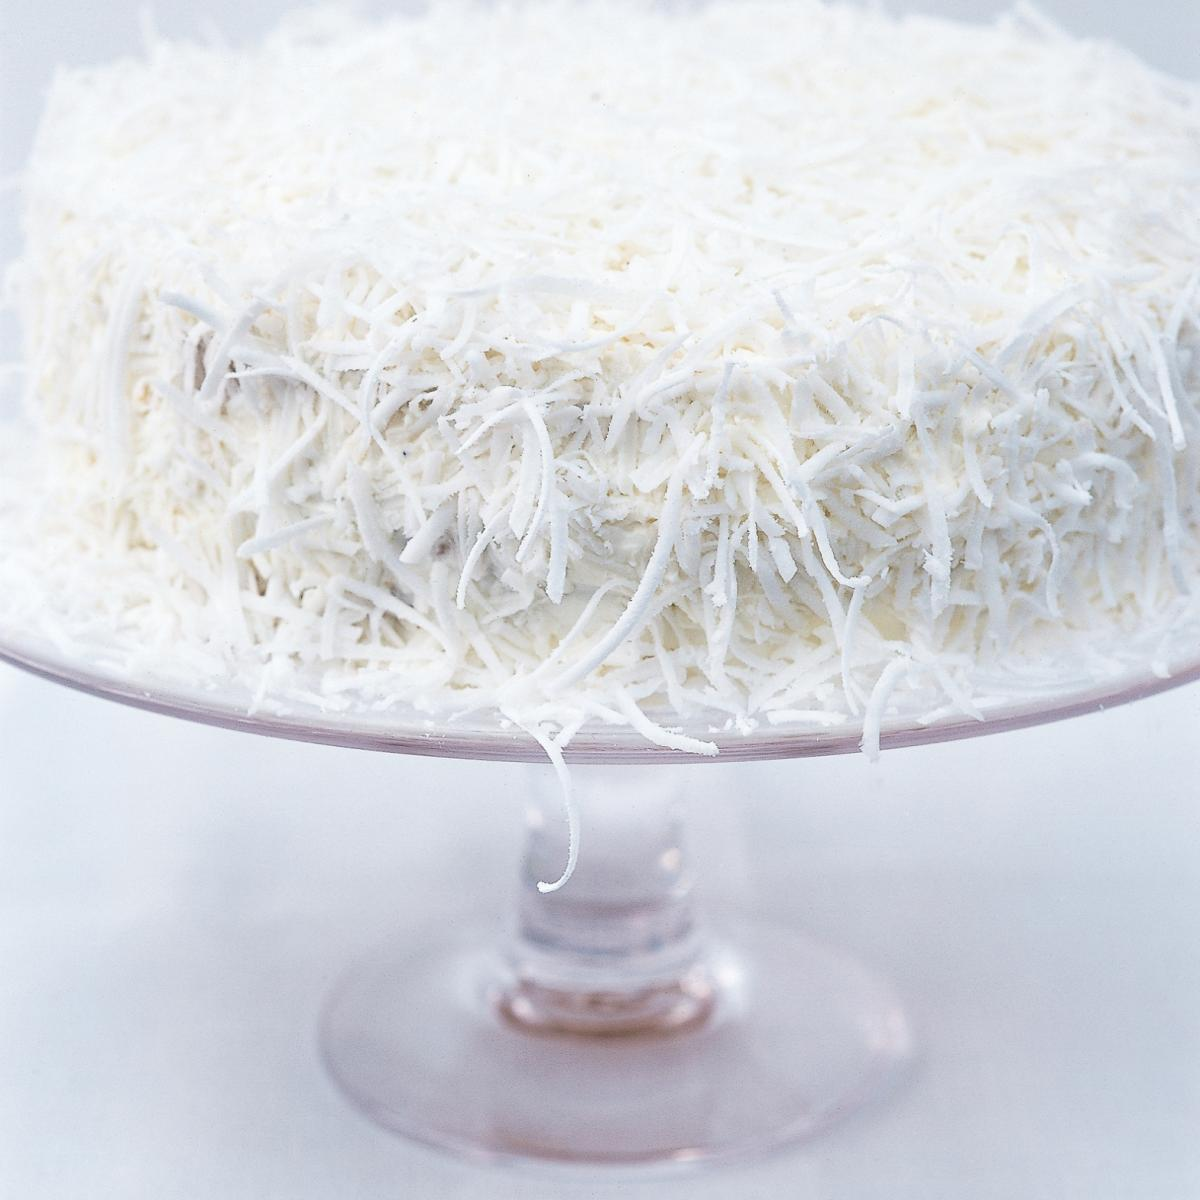 Htc fresh coconut layer cake version1